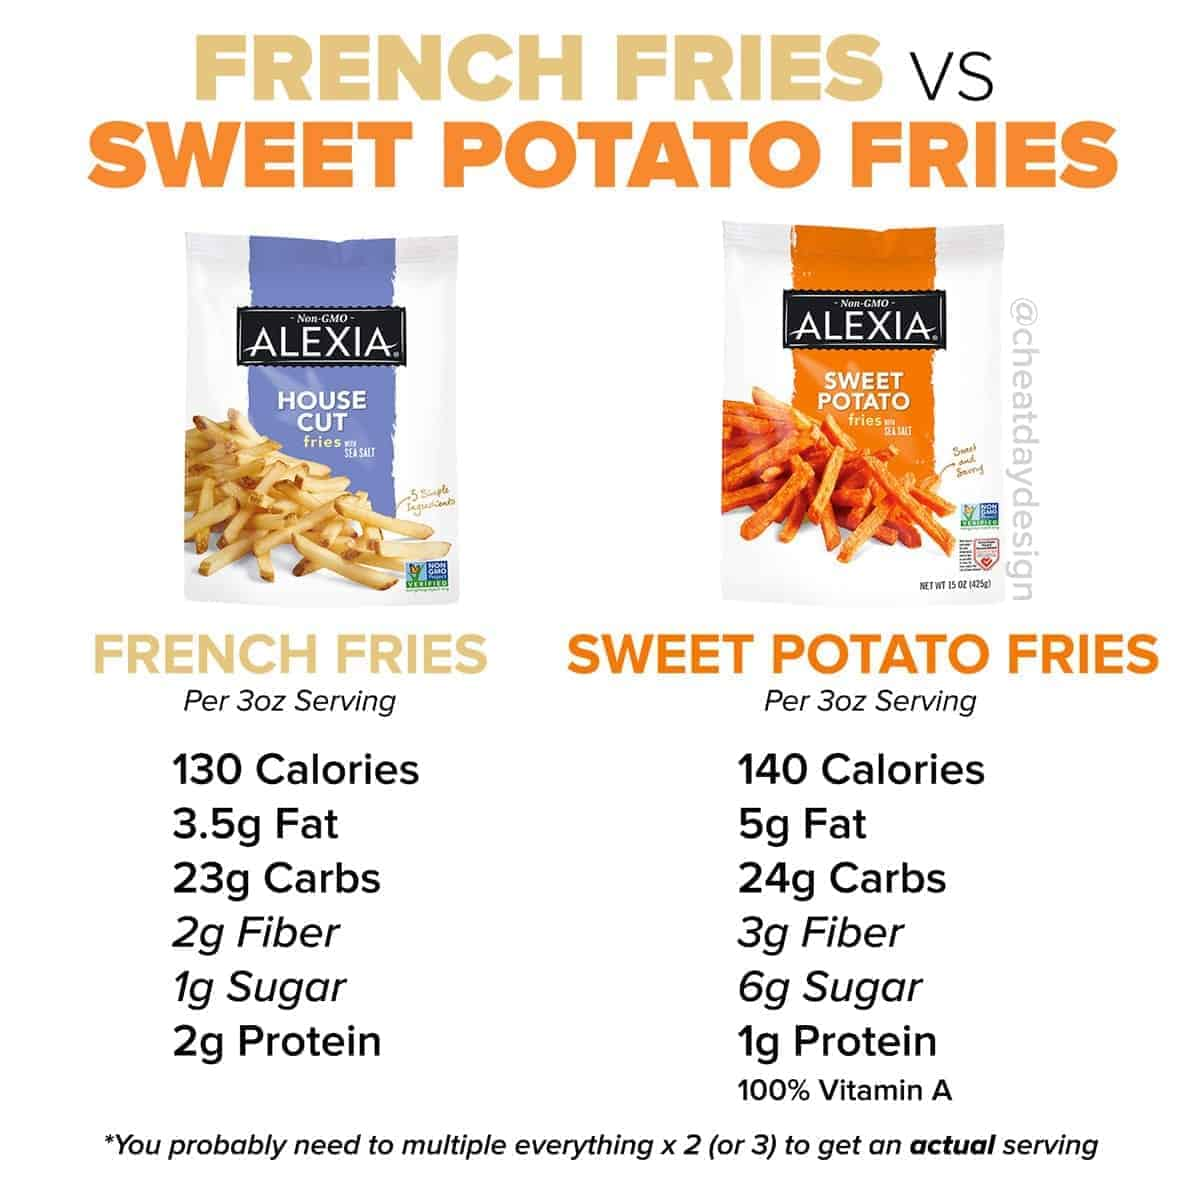 French fries vs sweet potato fries nutrition